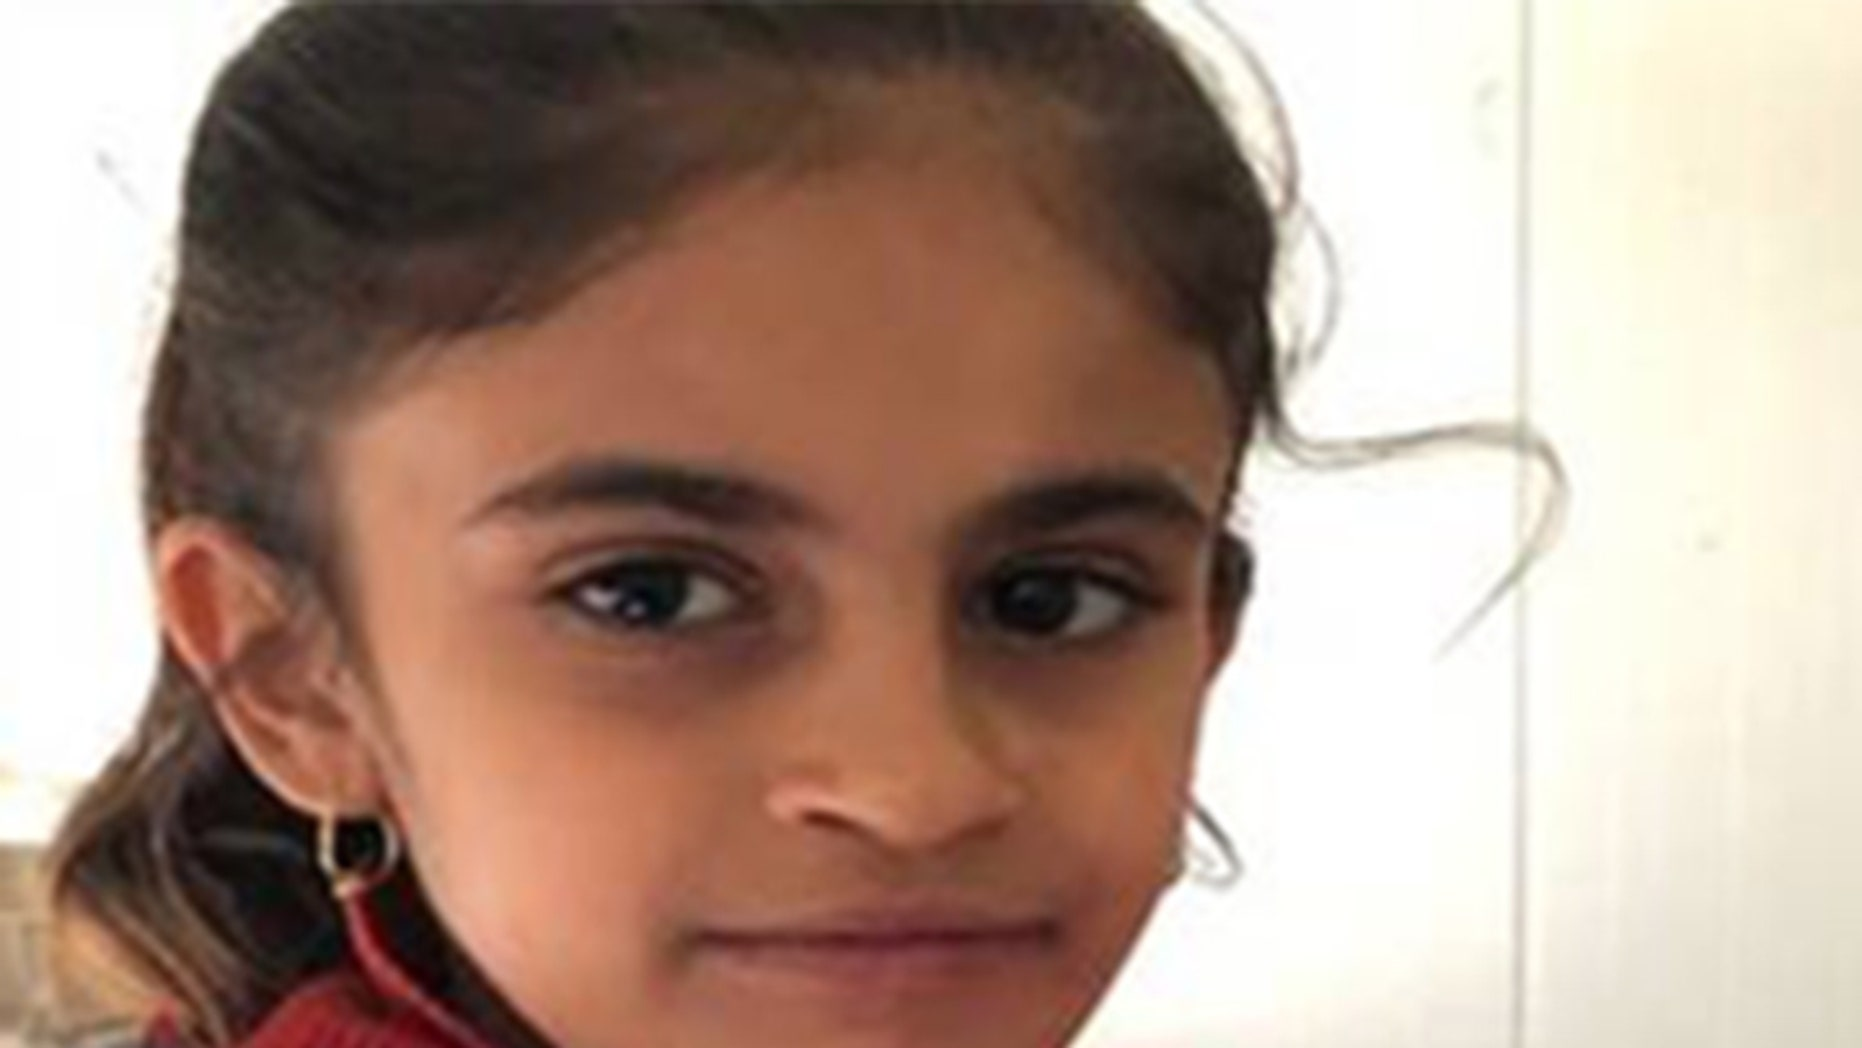 Medya, an eight-year-old Yazidi, is a survivor of ISIS occupation in Iraq.